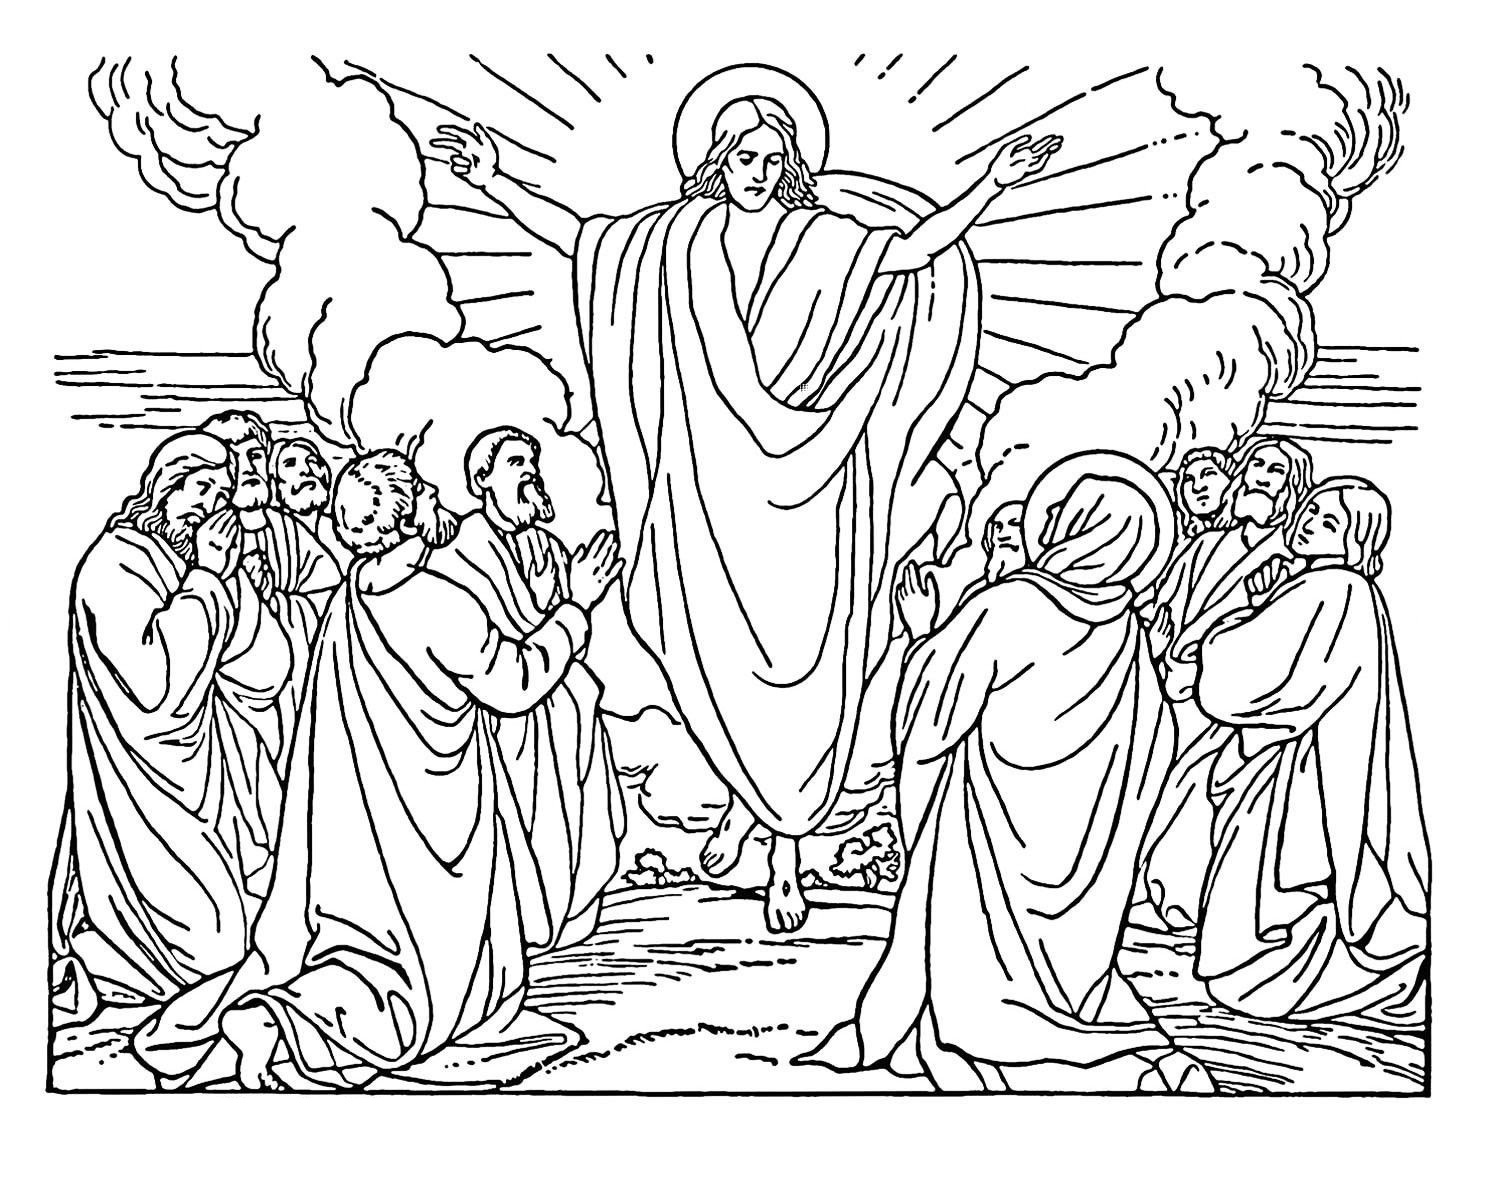 religious coloring pages for toddlers - photo#37